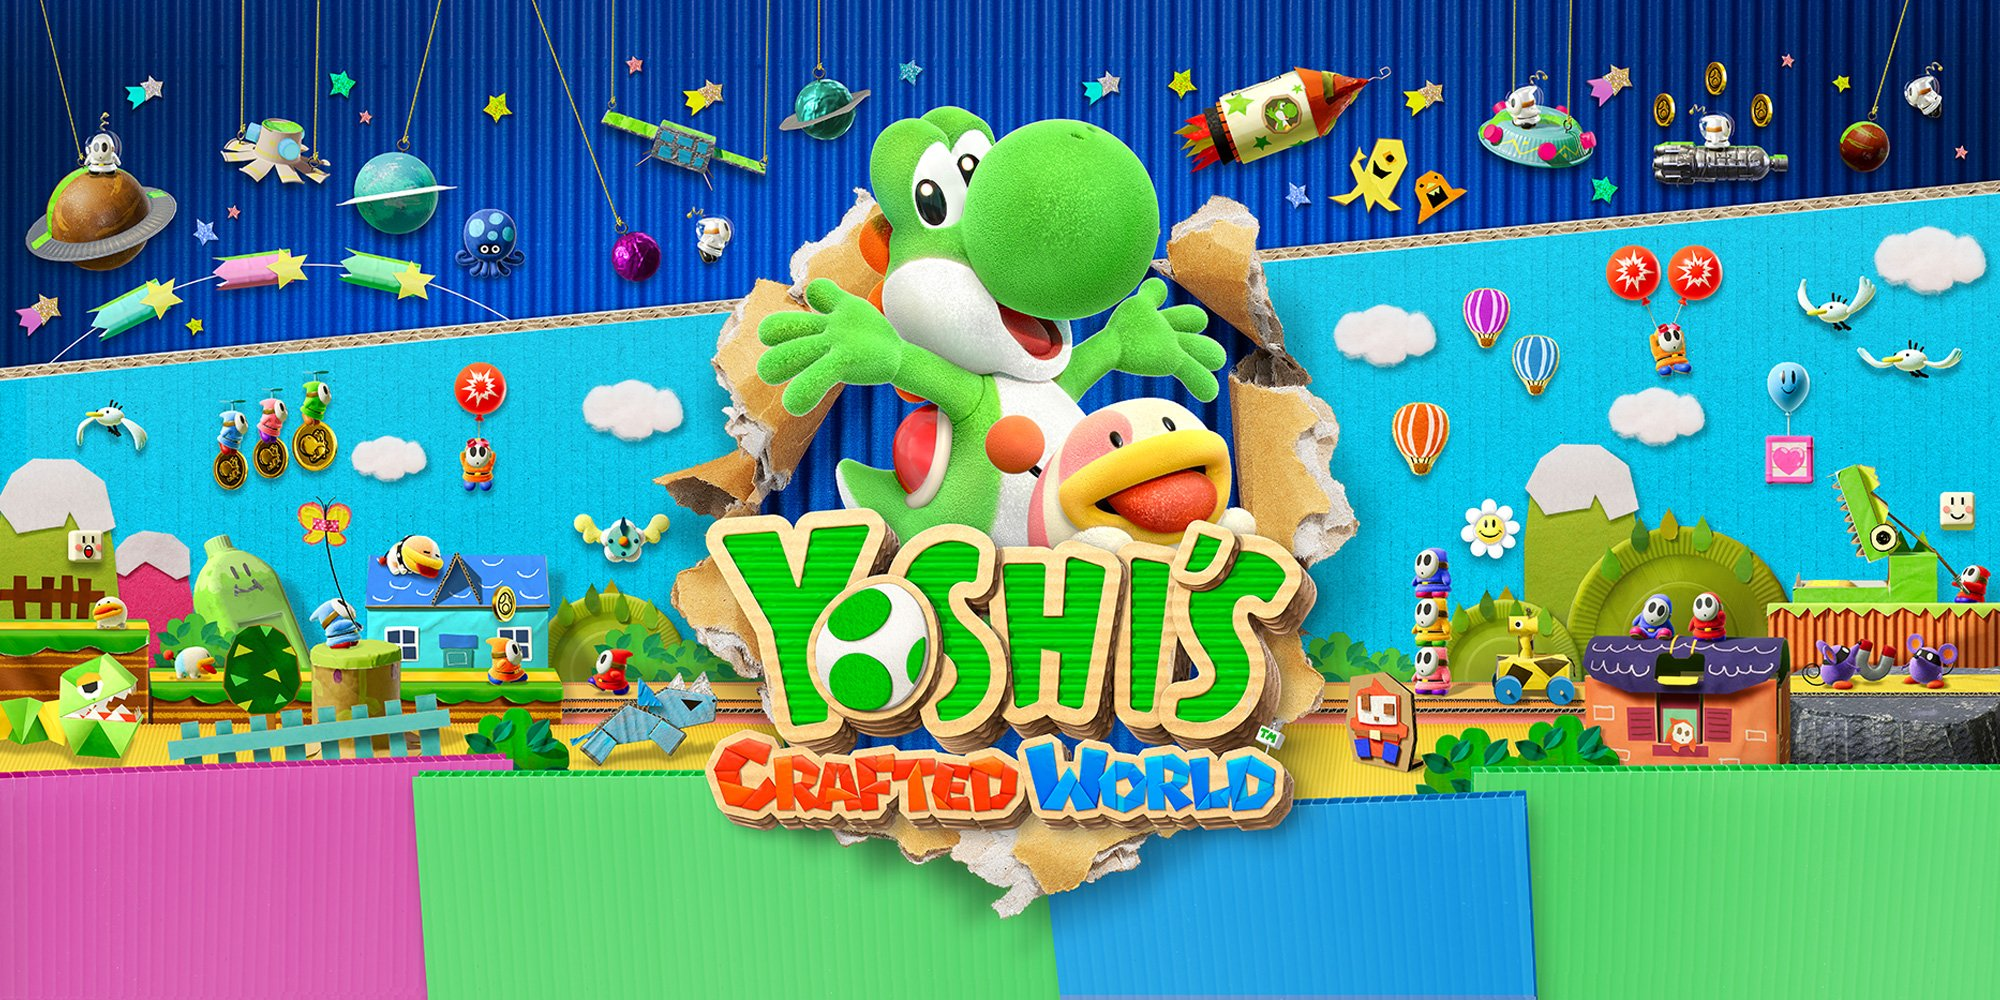 De nouvelles vidéos de gameplay pour Yoshi's Crafted World https://t.co/nvTgtWSAf3 #Yoshi #NintendoSwitch https://t.co/KpsO29bGQ3